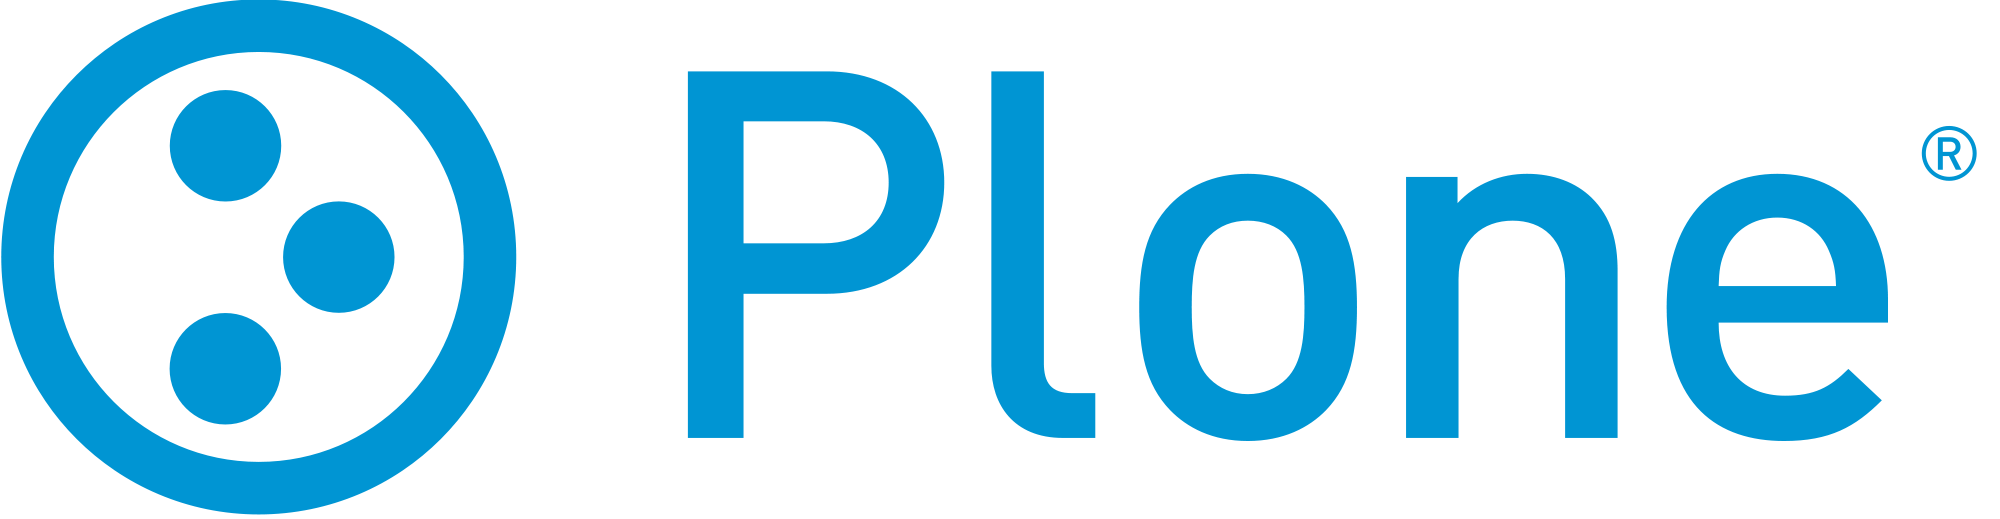 https://upload.wikimedia.org/wikipedia/commons/thumb/d/df/Plone-logo.svg/2000px-Plone-logo.svg.png